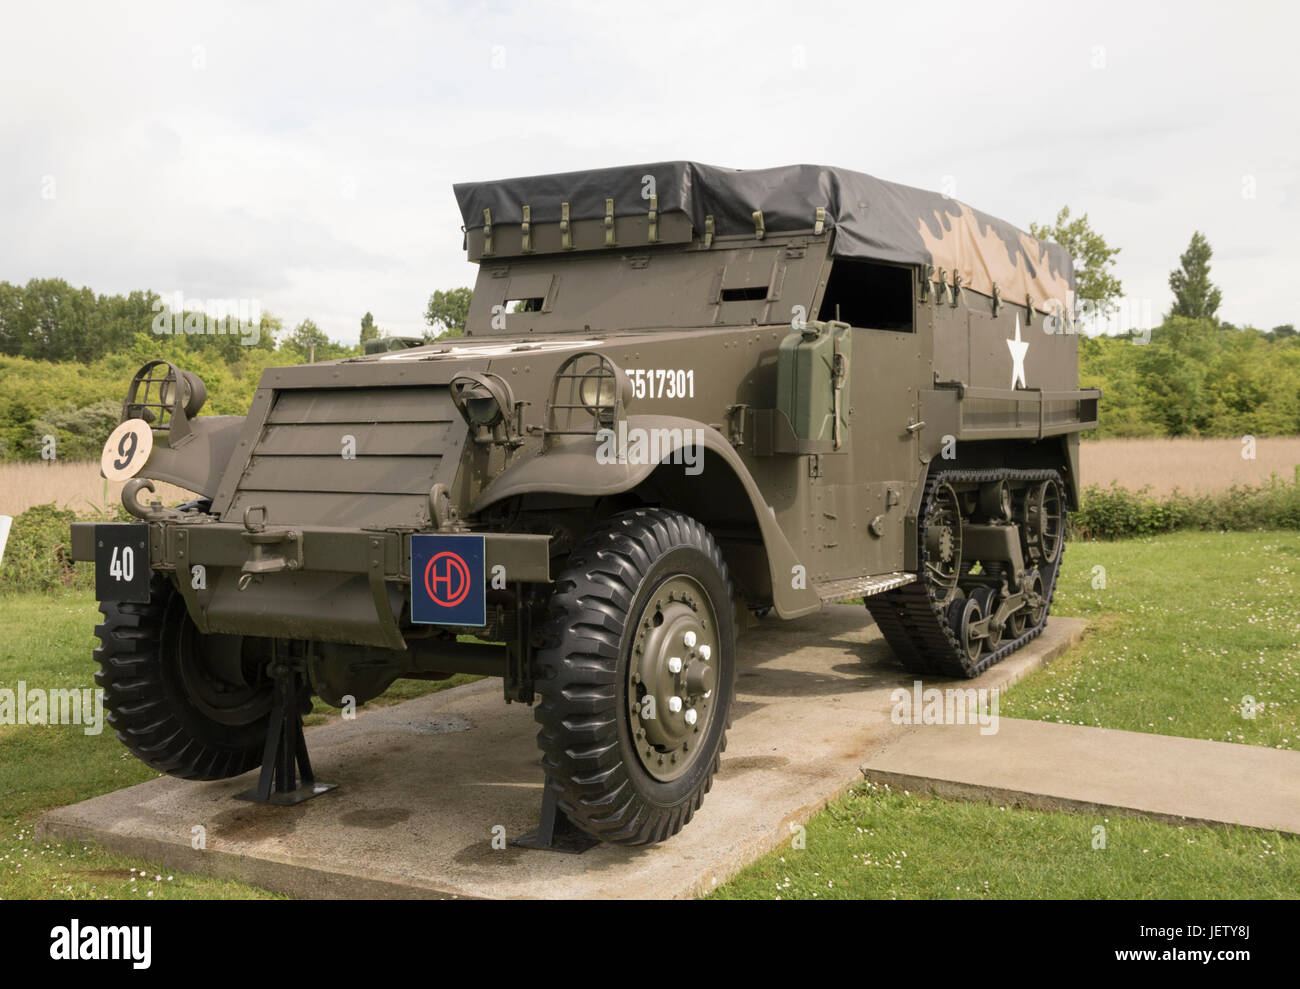 American M3/M5 A1 Half Track reconnaissance and transport vehicle - Stock Image